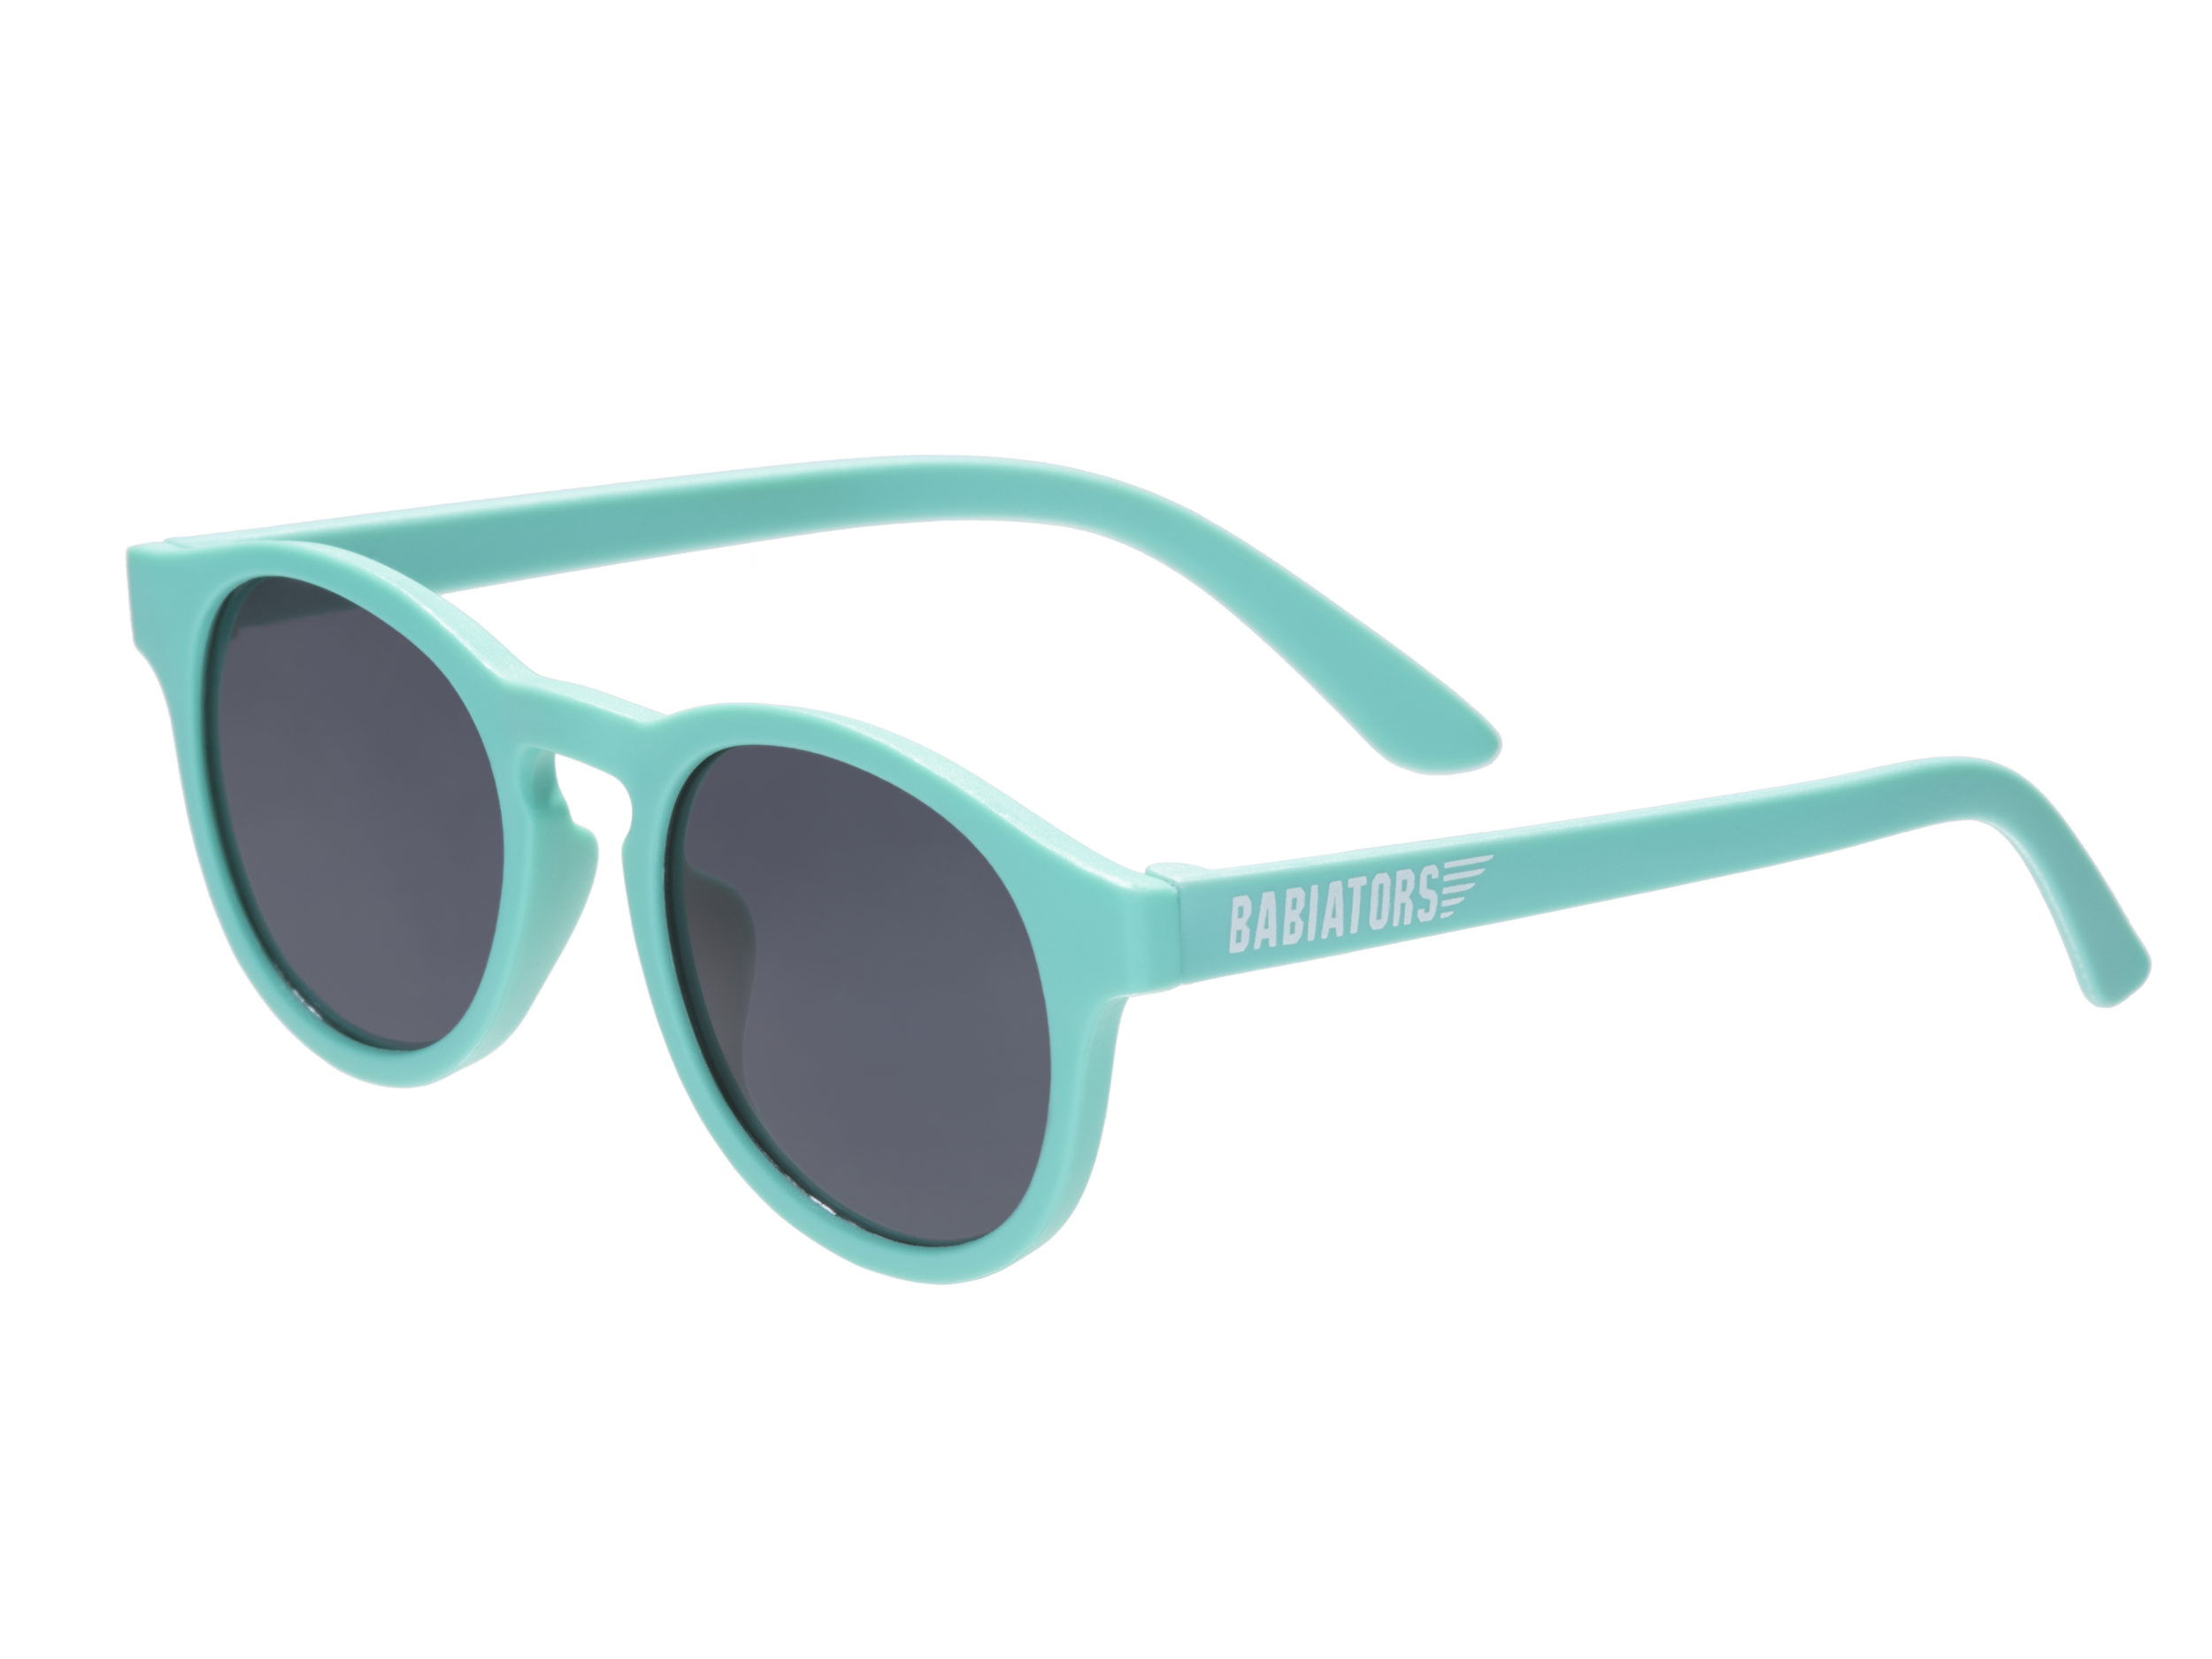 315e09dc5 Best kids sunglasses to protect from harmful rays